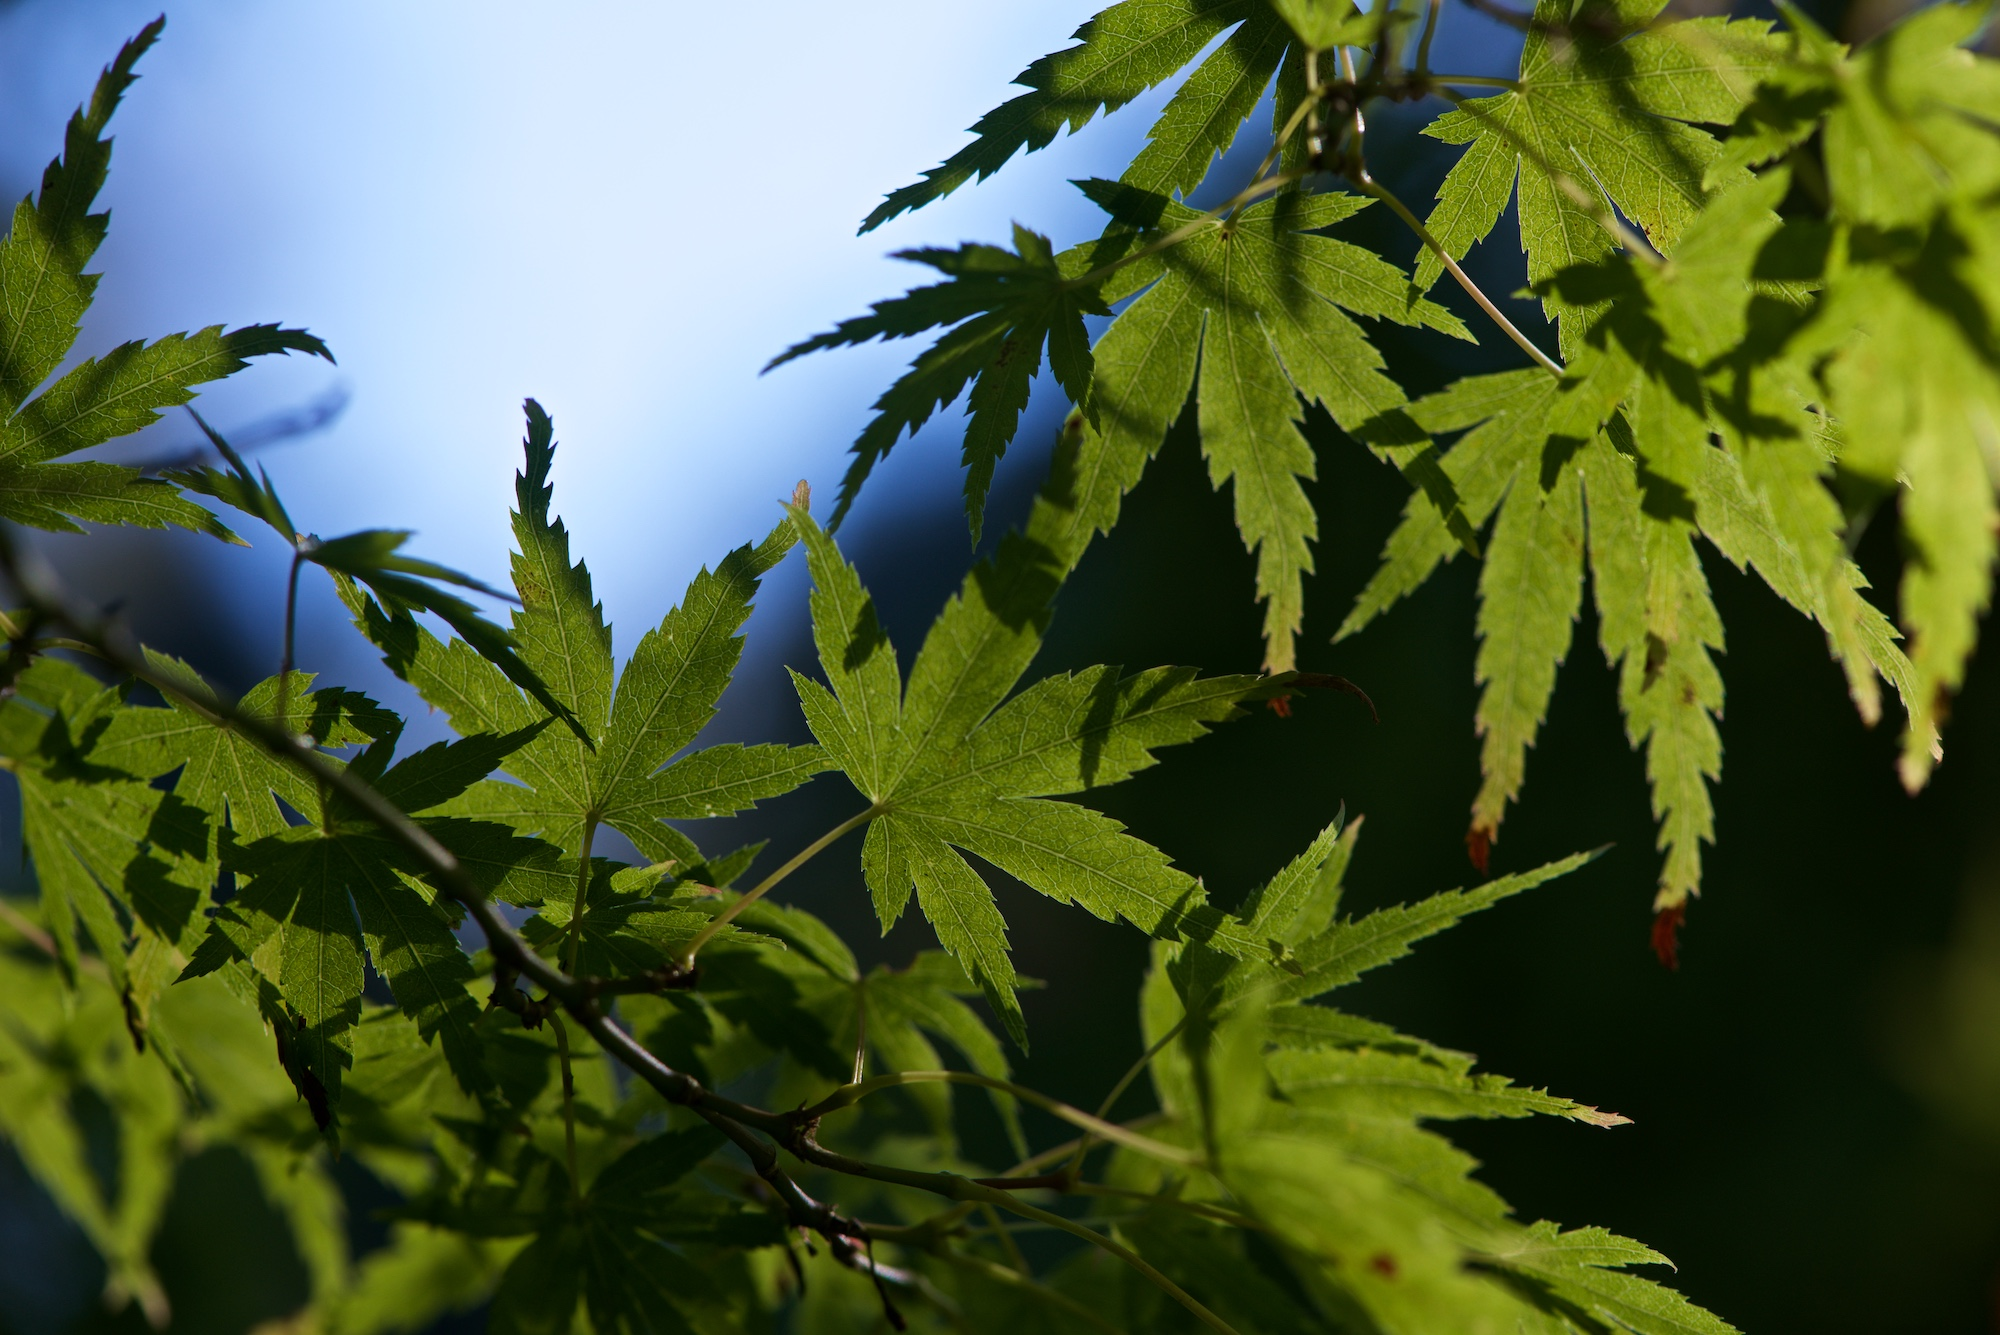 Several green maple leaves are lit up in sunlight against a dark background.